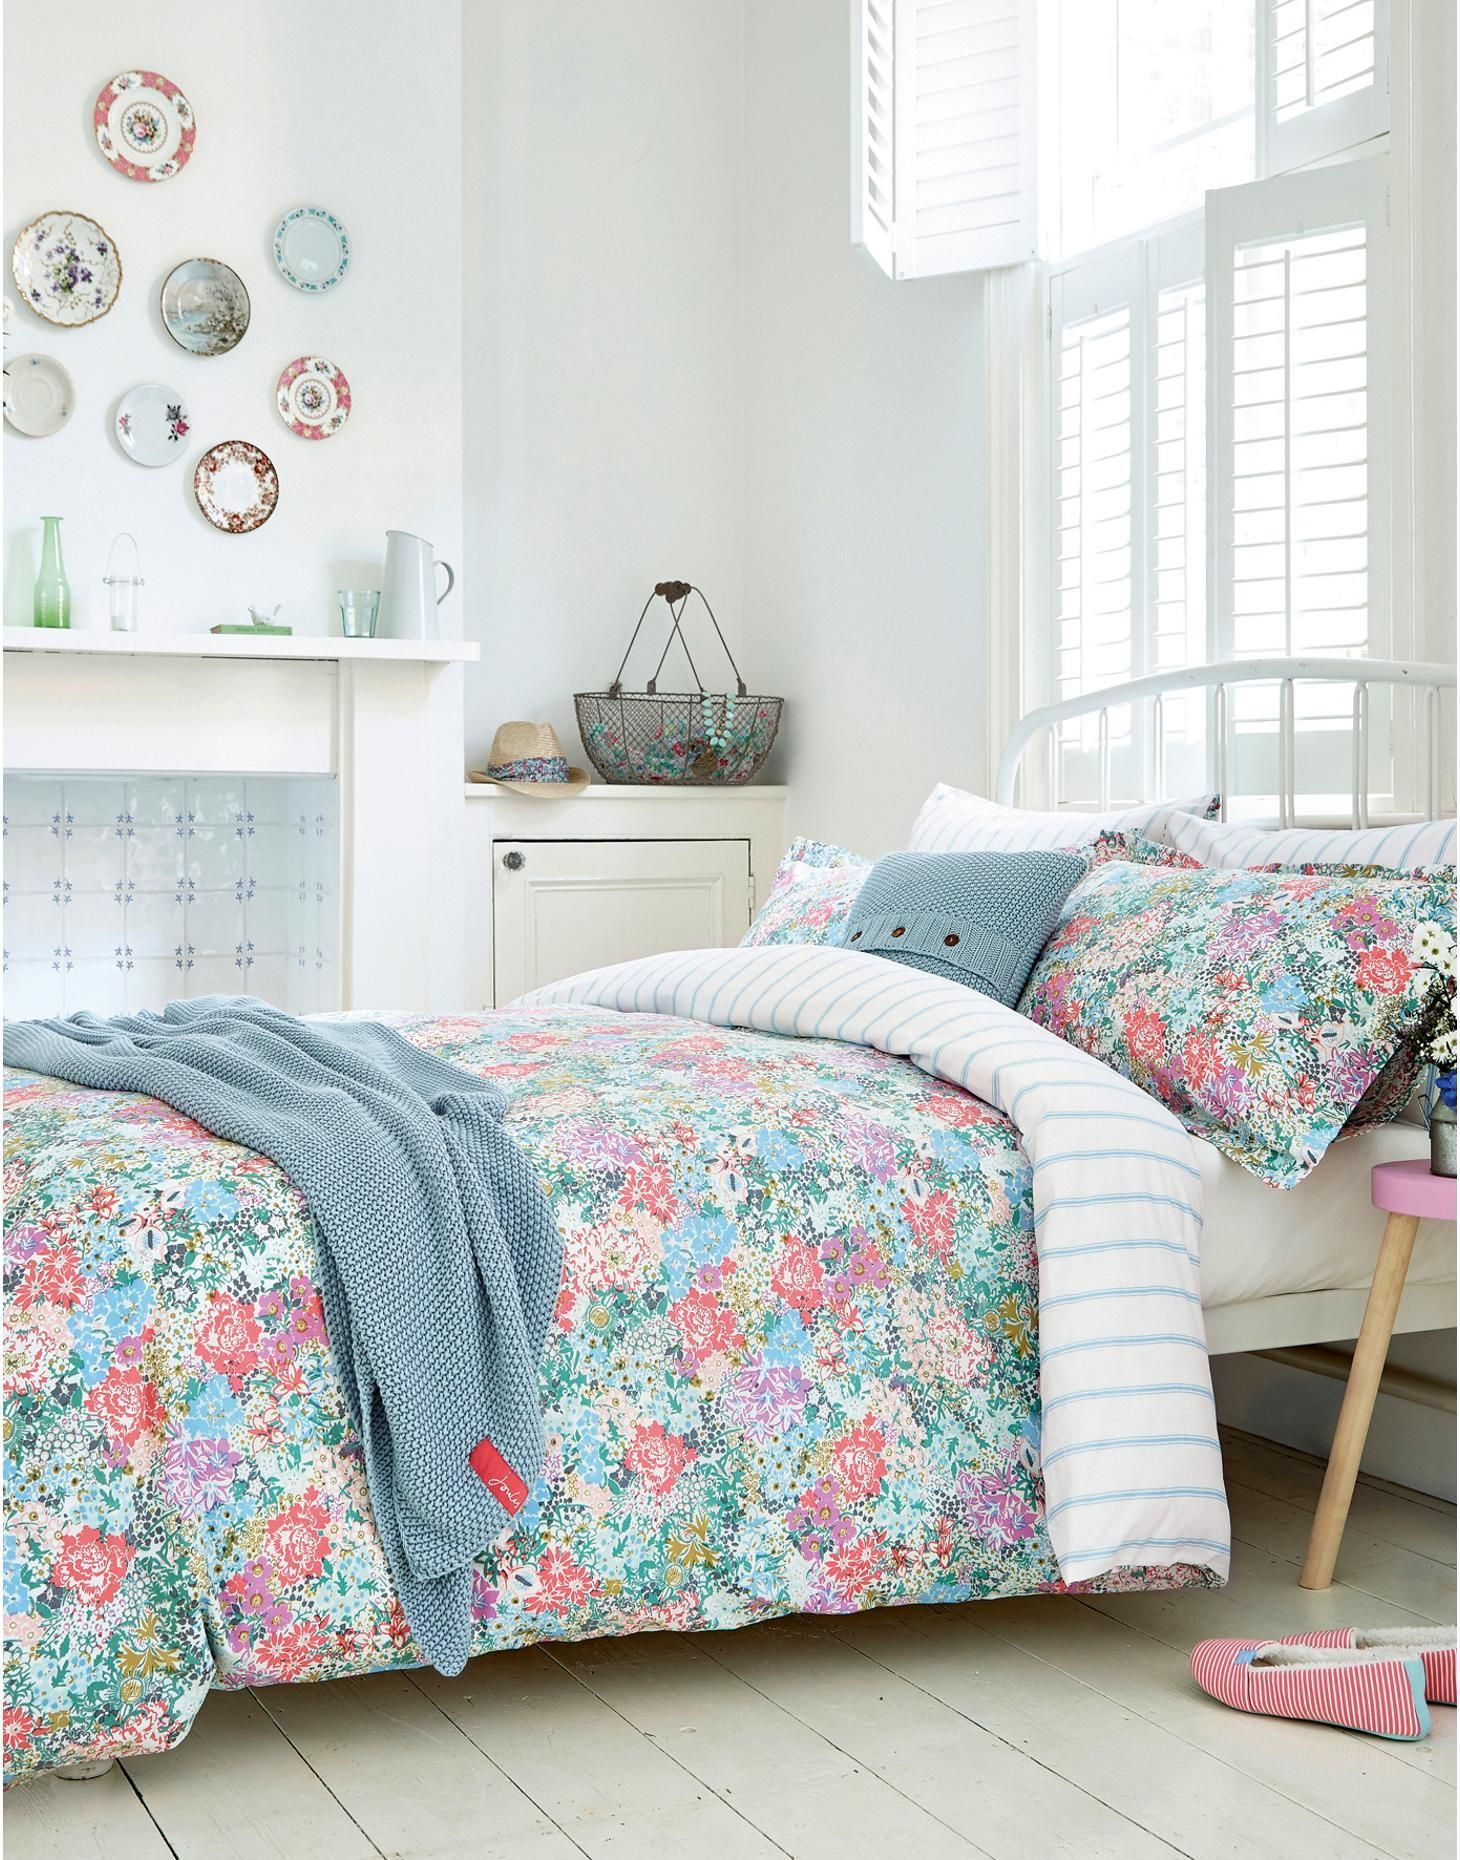 duvetchelsea chelsea floral duvet cover this would go perfectly  - duvetchelsea chelsea floral duvet cover this would go perfectly with mypurple floral sheets